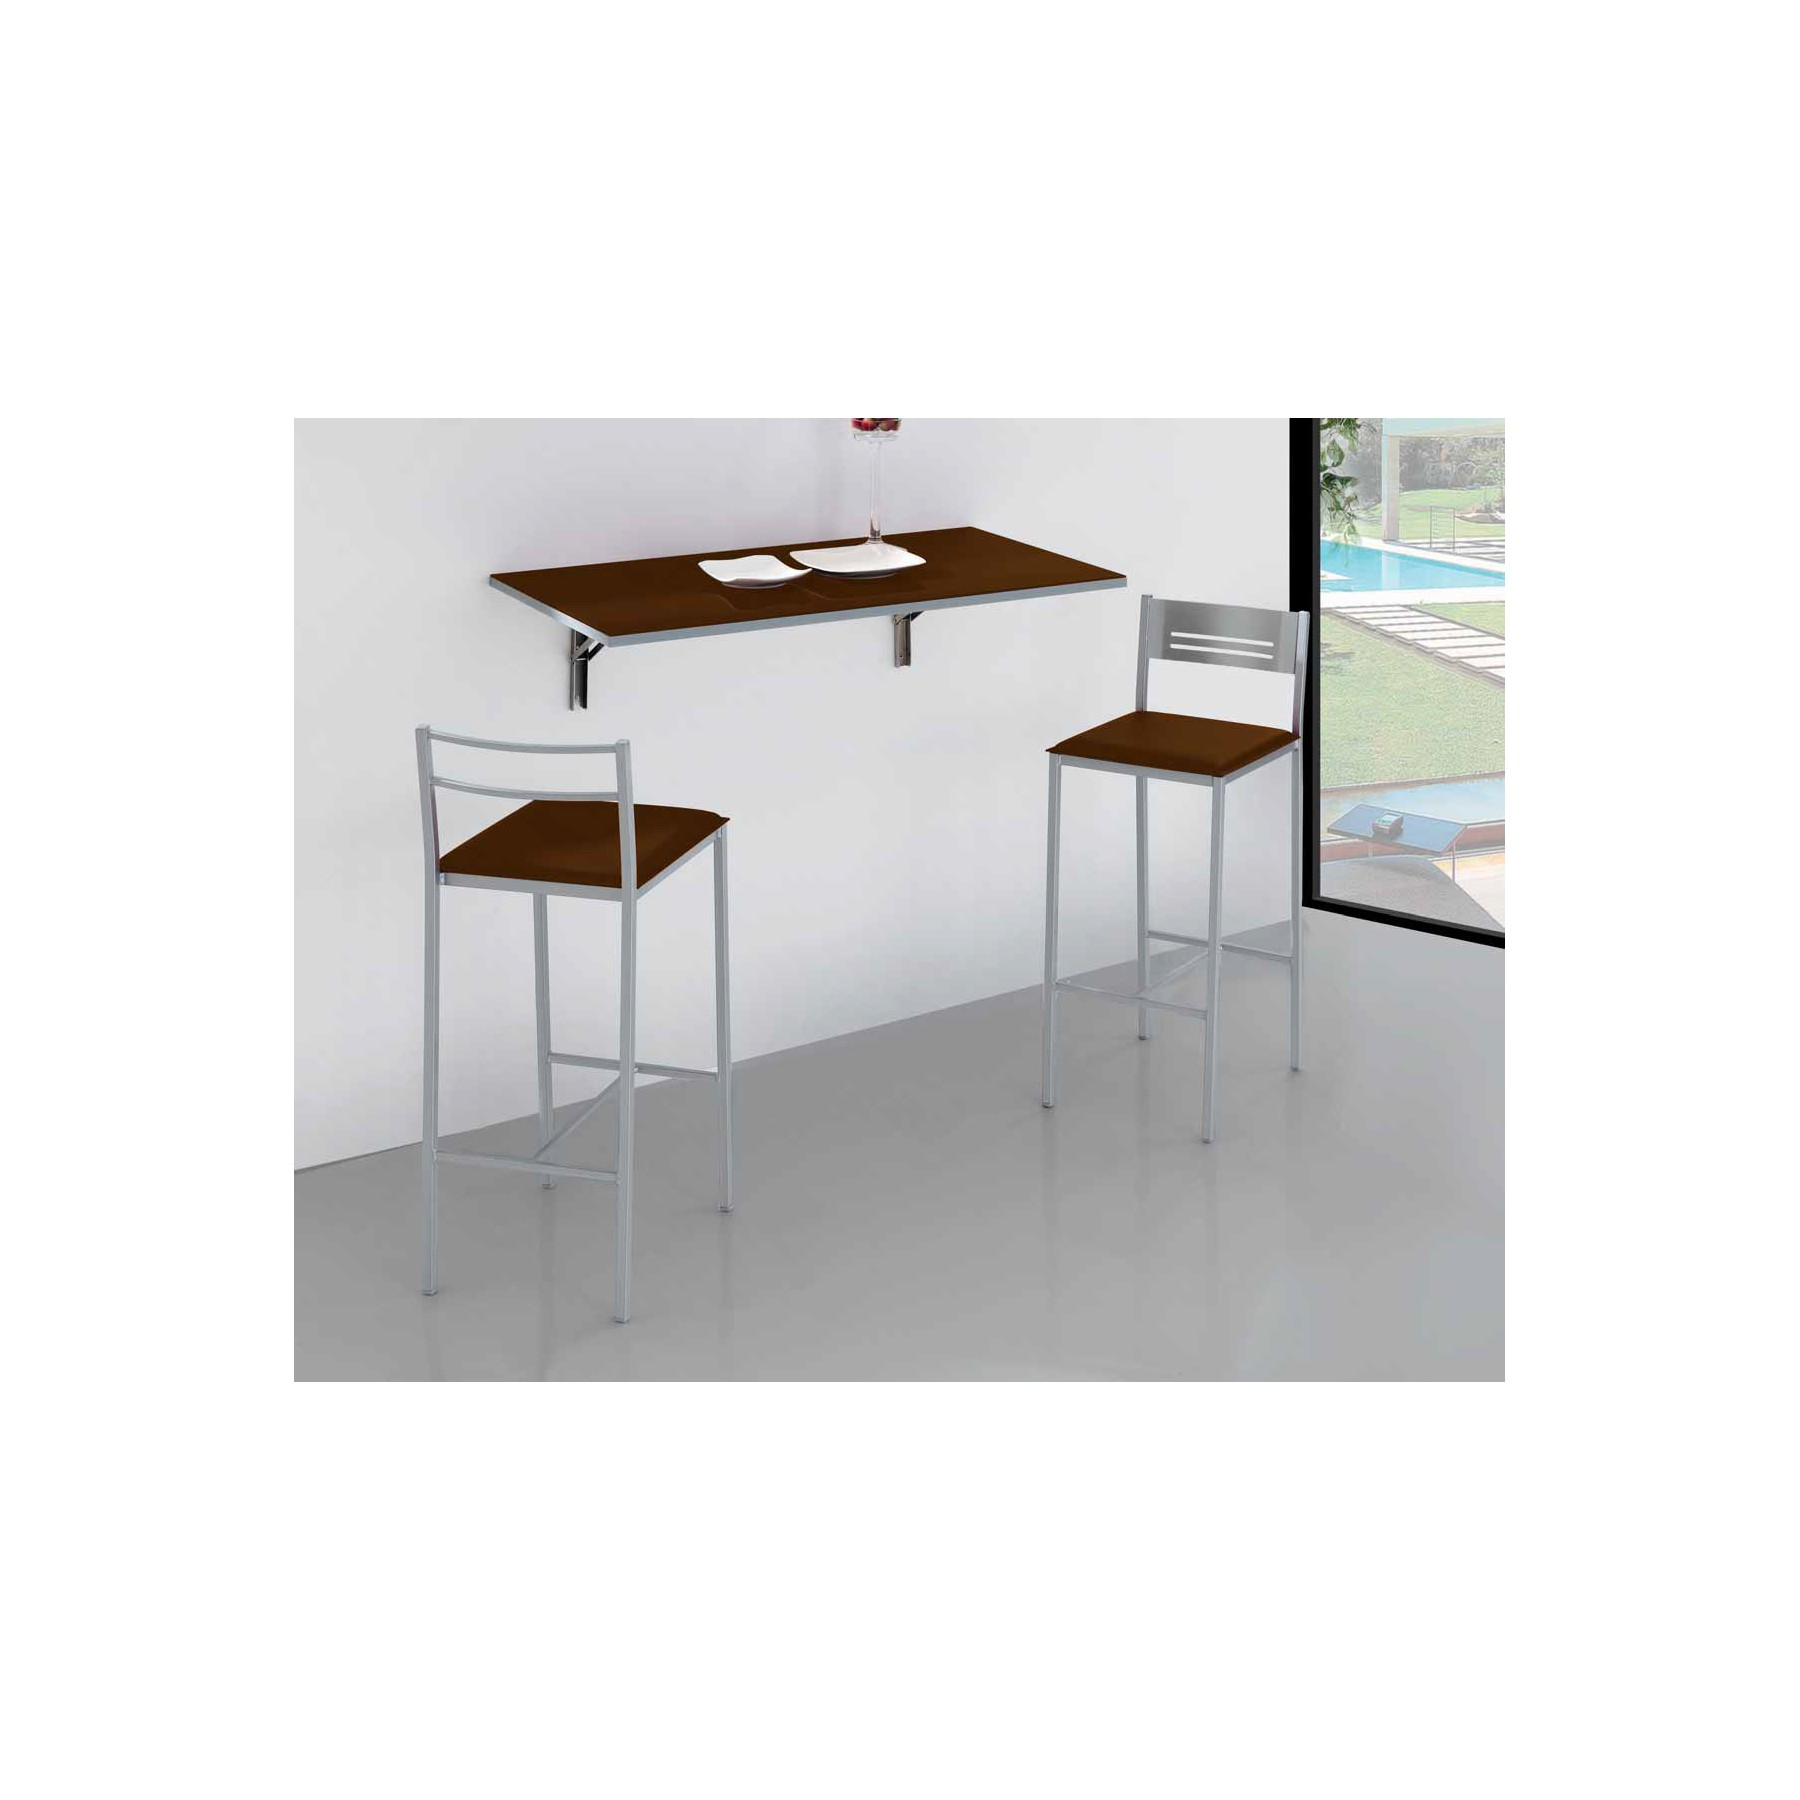 Mesa de cocina de pared plegable simple dkg for Mesas de cocina plegables